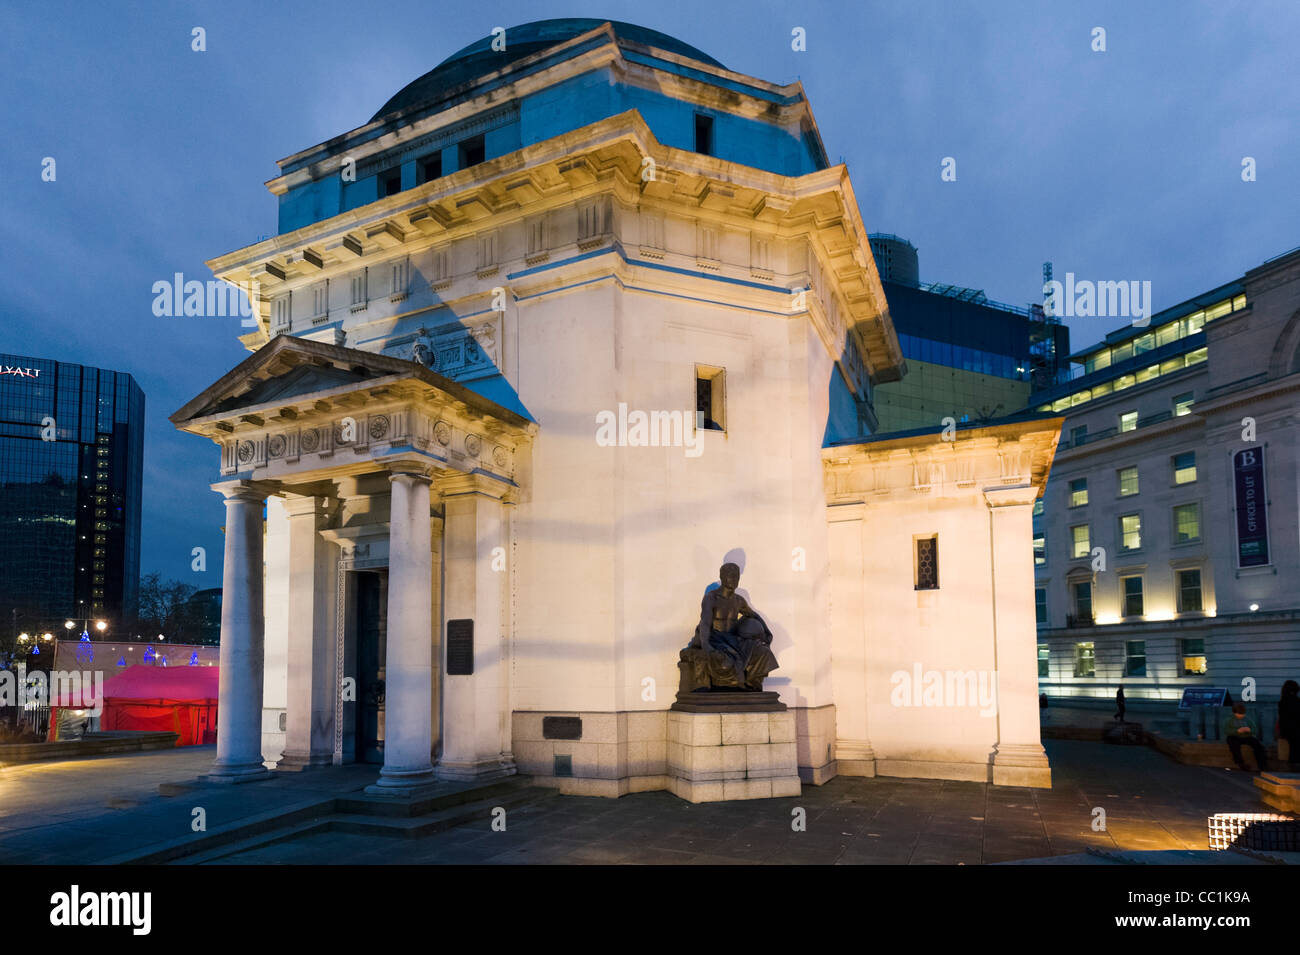 The Hall of Memory at night, Centenary Square, Birmingham, UK - Stock Image